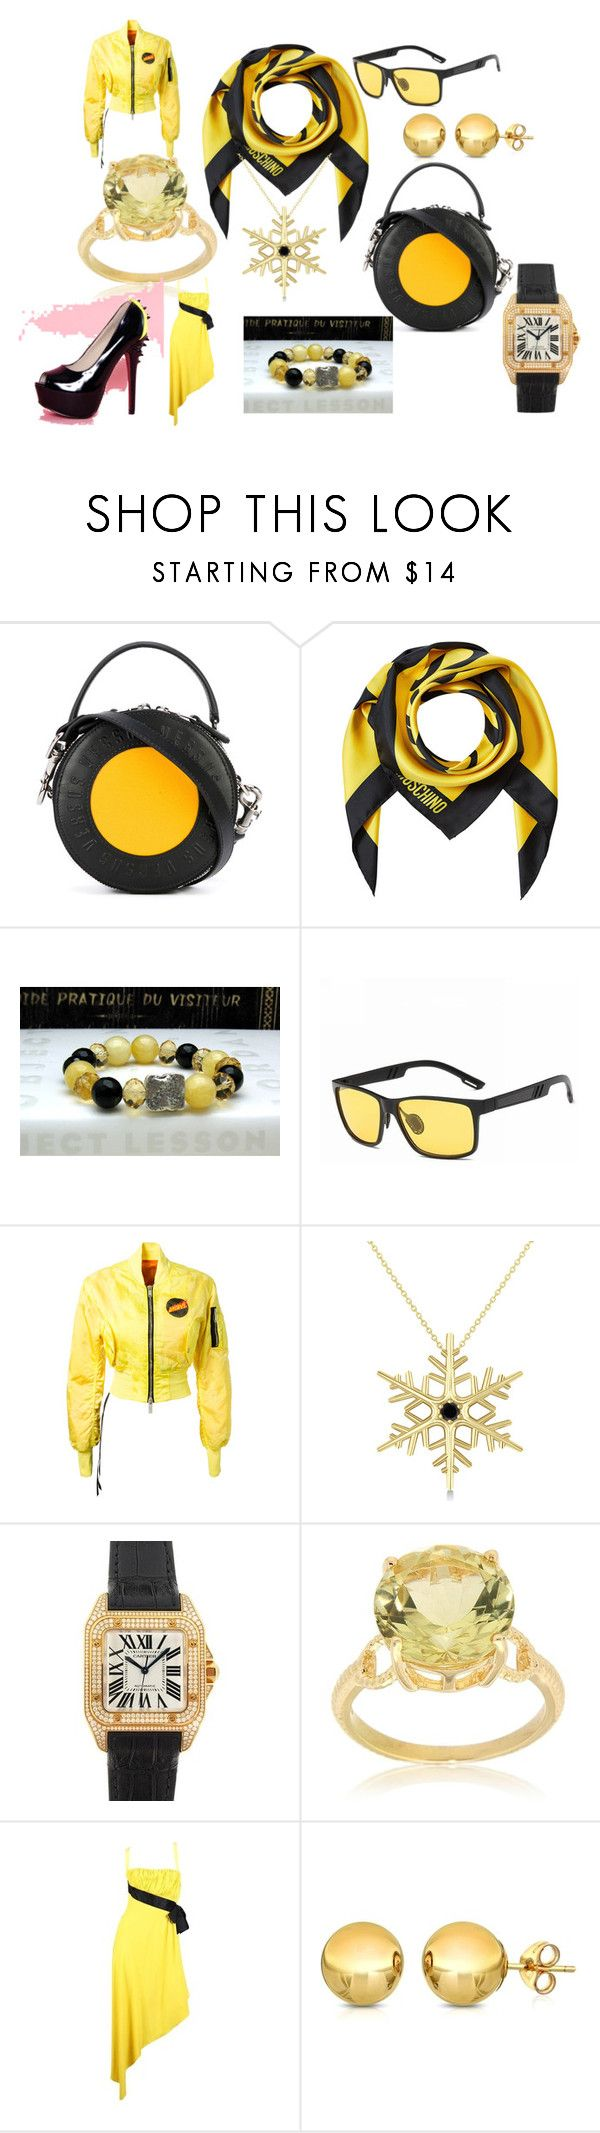 """BEE BUSINESS"" by marguerite-dillworth on Polyvore featuring Versus, Moschino, Unravel, Allurez, Cartier, Pearlz Ocean, Chanel and Pori"